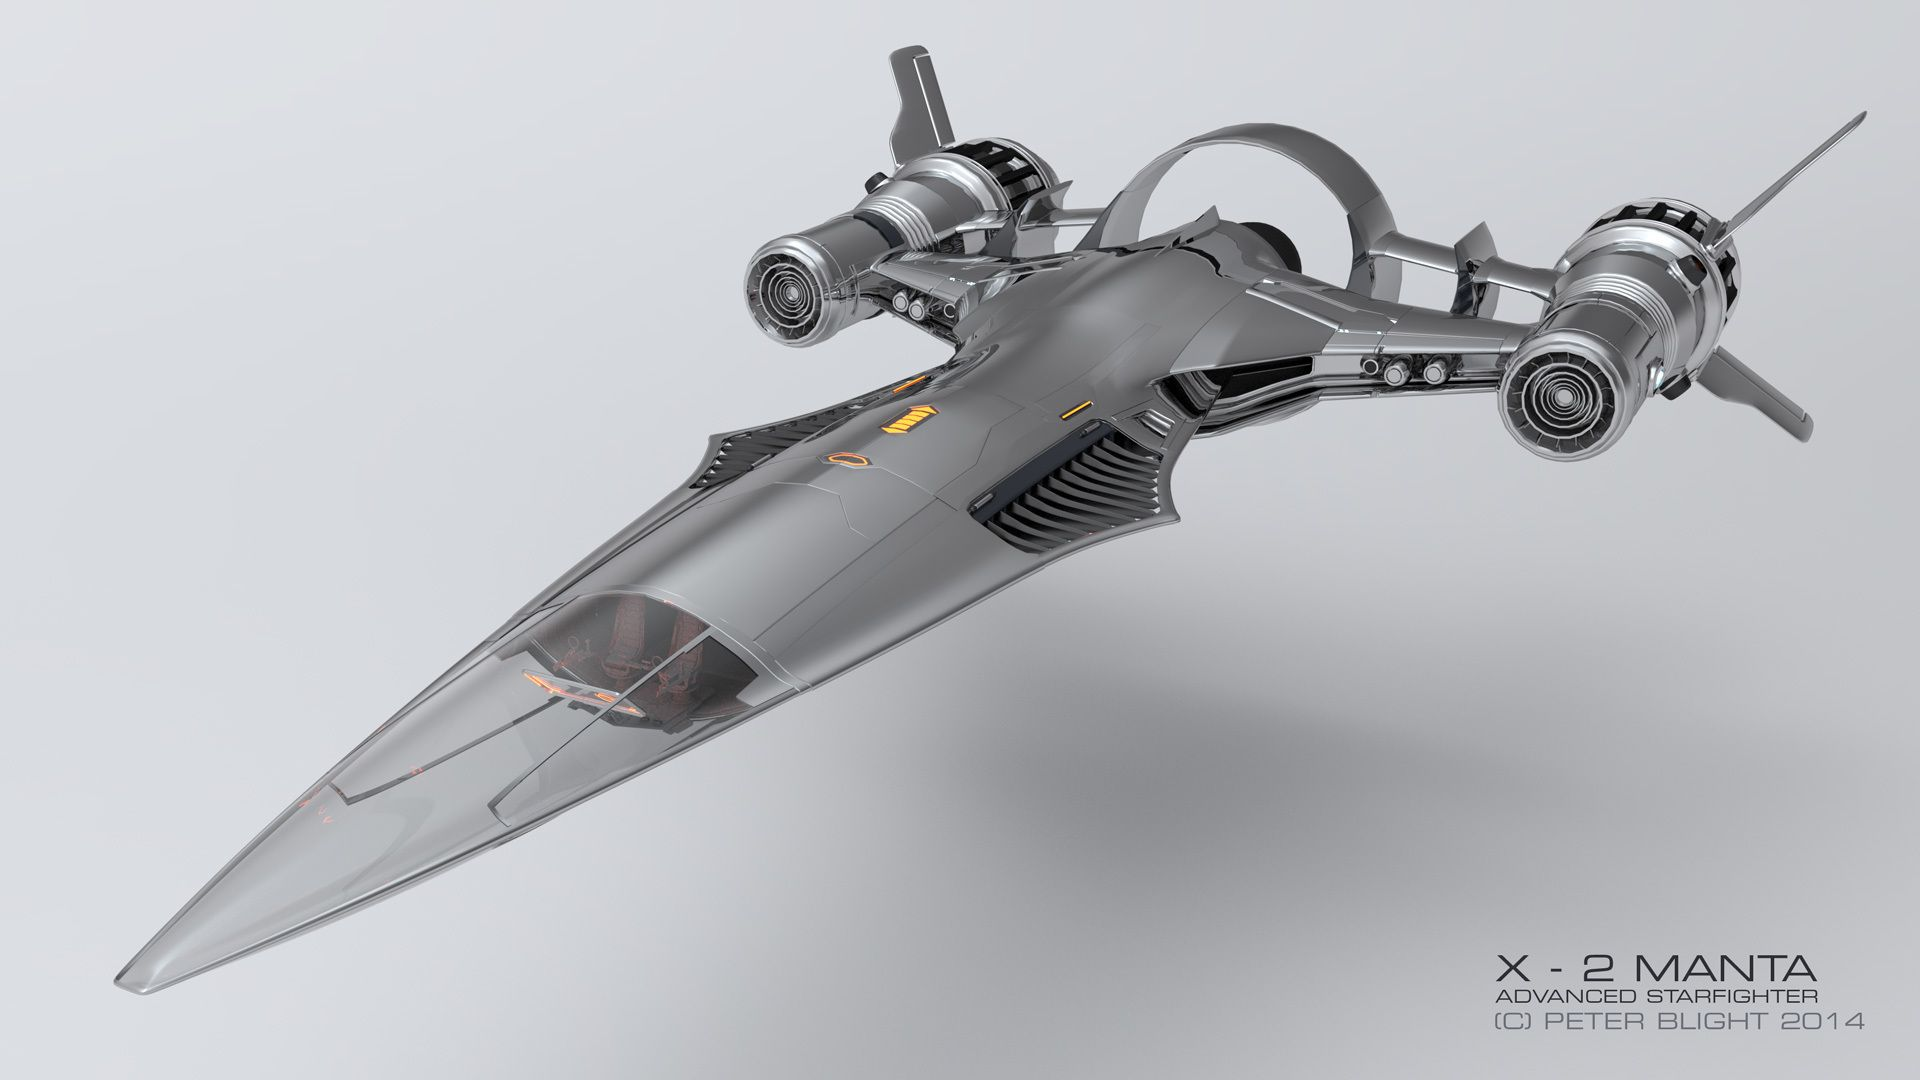 X - 2 MANTA Advanced Starfighter WIP (Now fully armed! :D ...